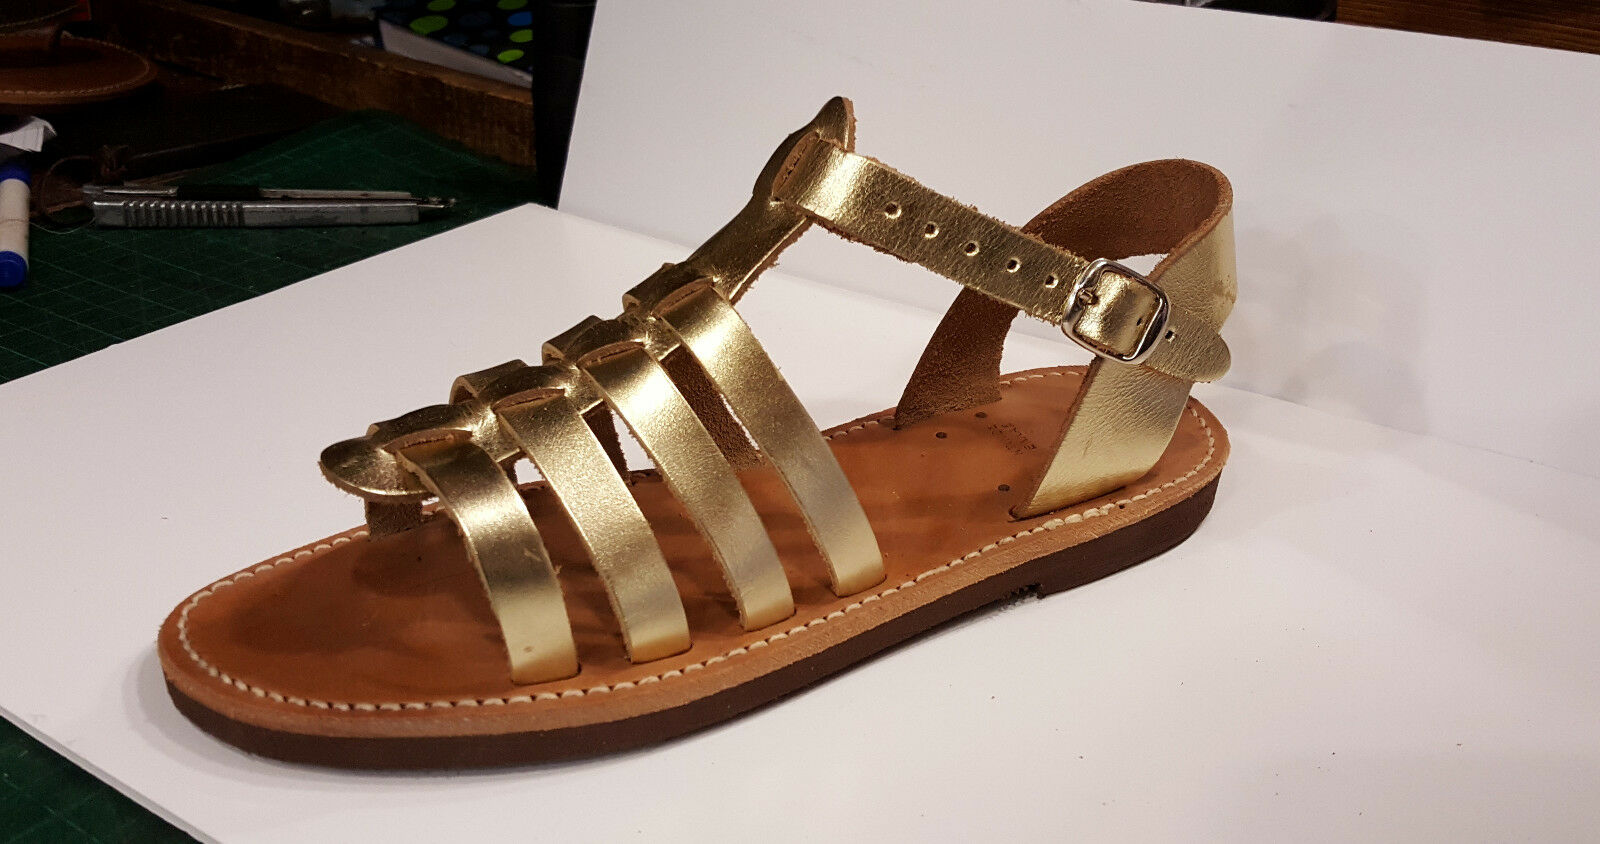 Handmade or Leather Sandals Greek Classic Design Ancient Boho Hippie Style